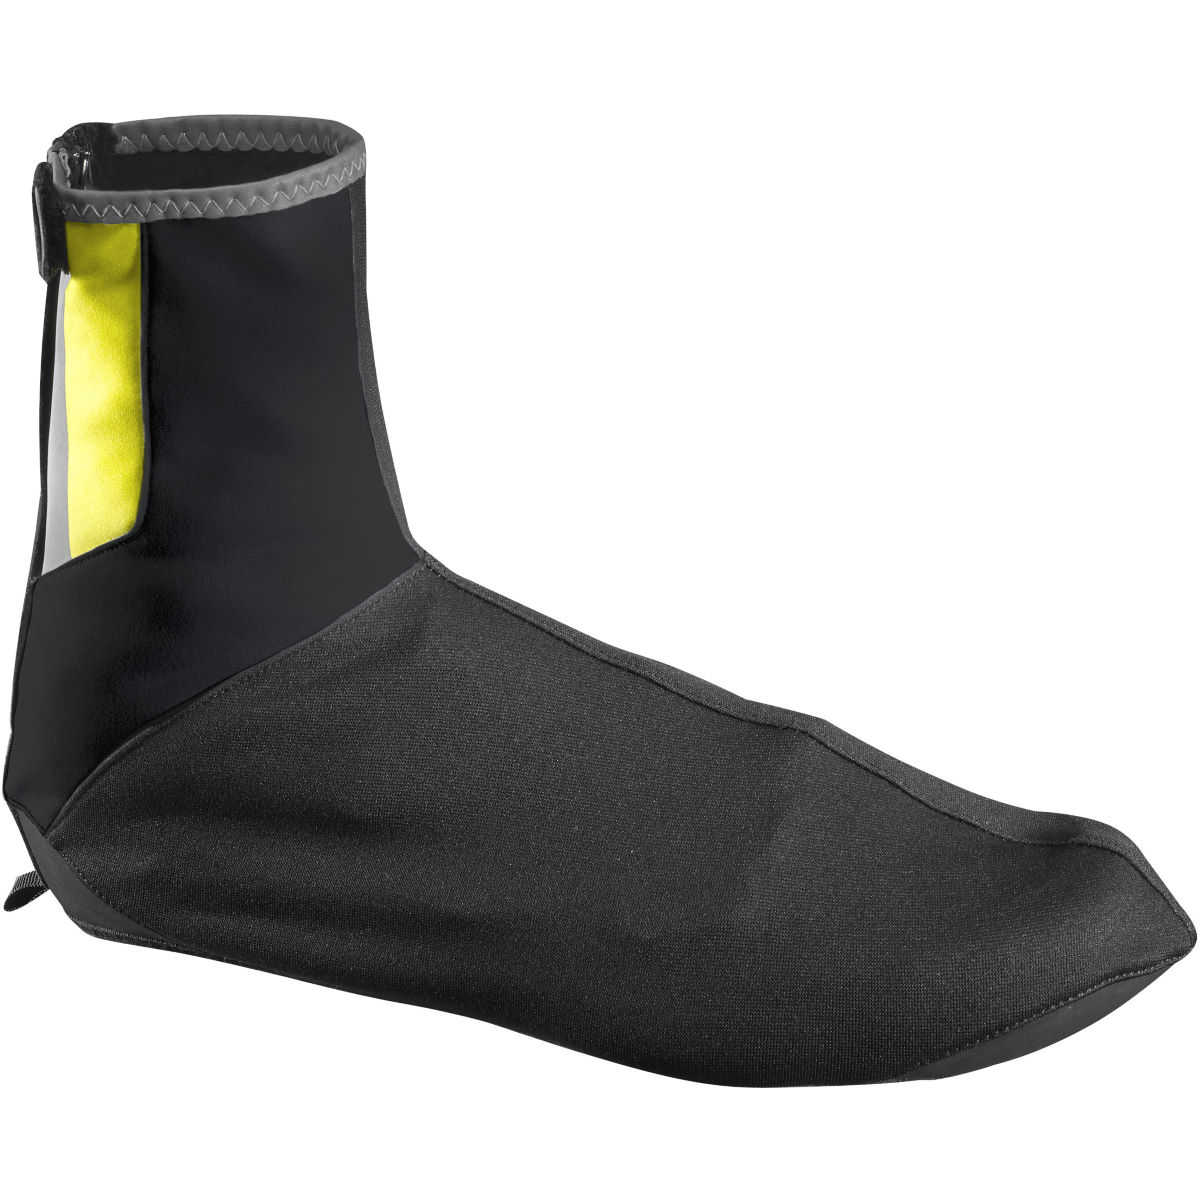 Mavic Vision Overshoes   Overshoes